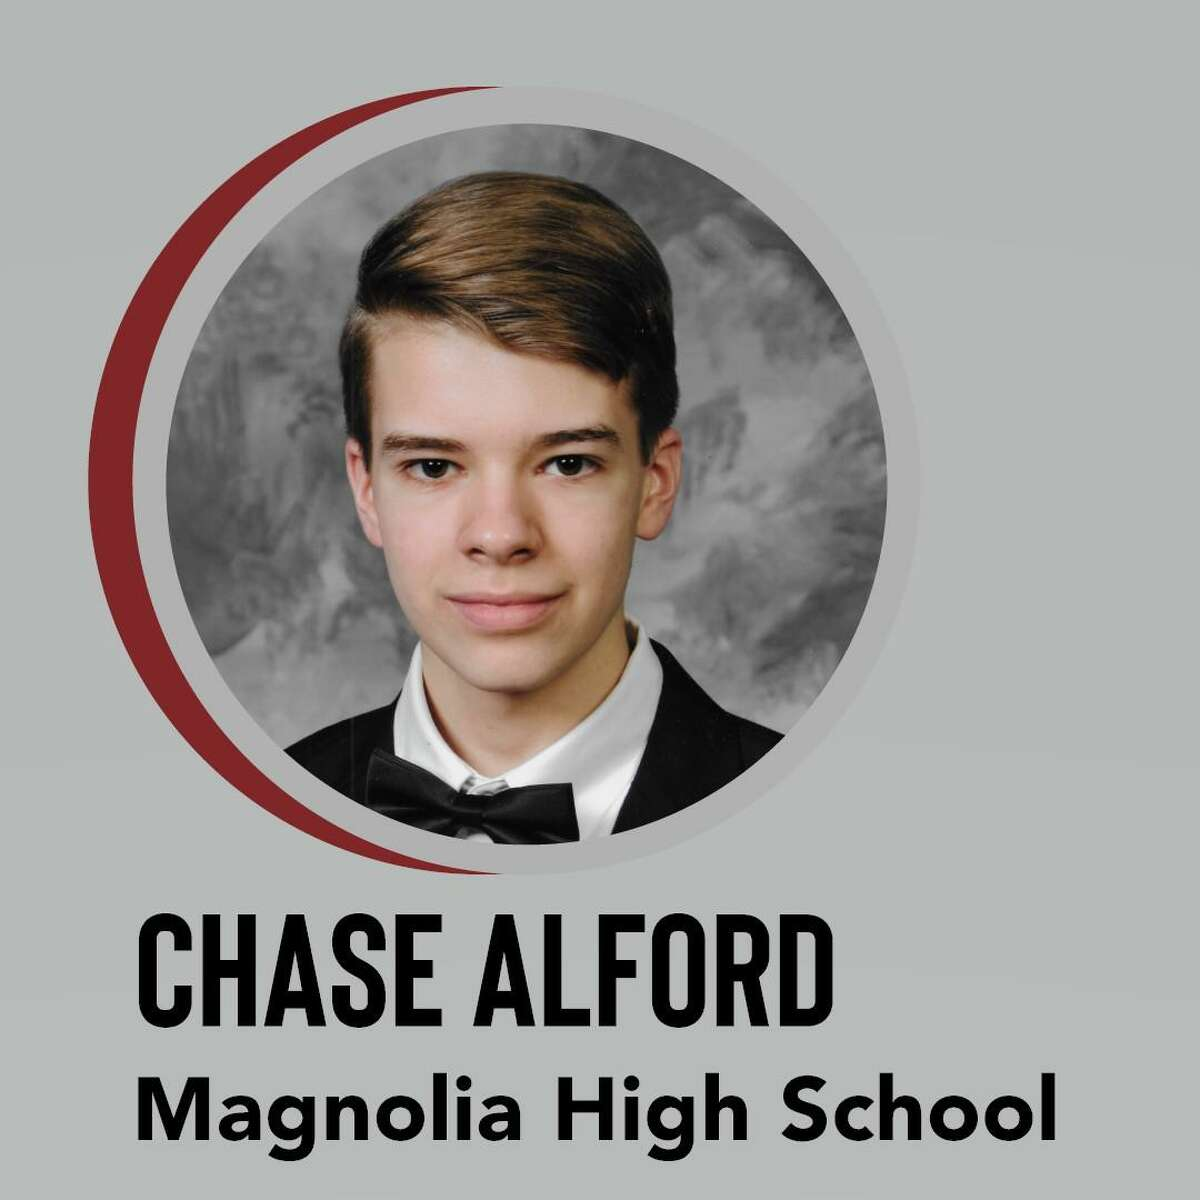 Magnolia High School Class of 2021 Valedictorian Chase Alford.